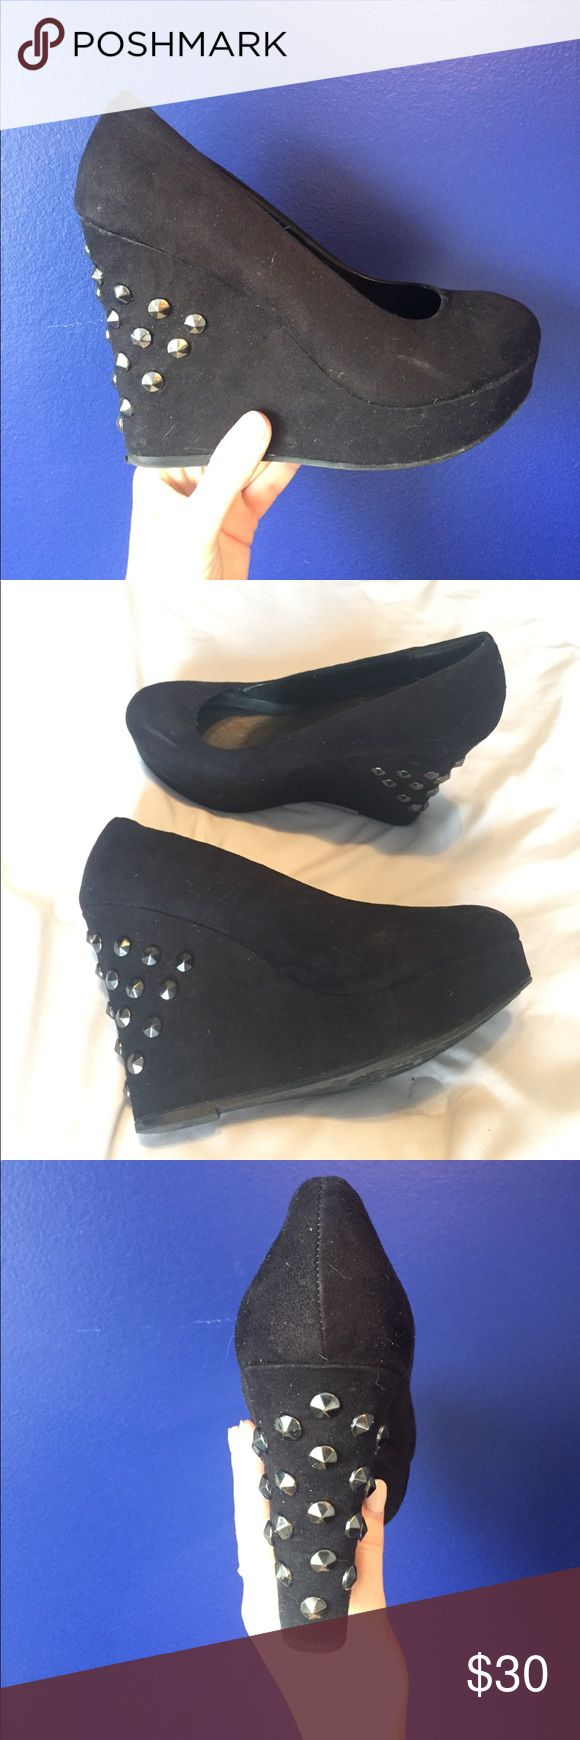 Kardashian Kollection black studded wedges Kardashian Kollection black pewter studded wedges. Loved, but still in good condition. Suede material. Fits 8-8.5. Small scuffs on toes as depicted. Super cute!! Kardashian Kollection Shoes Wedges